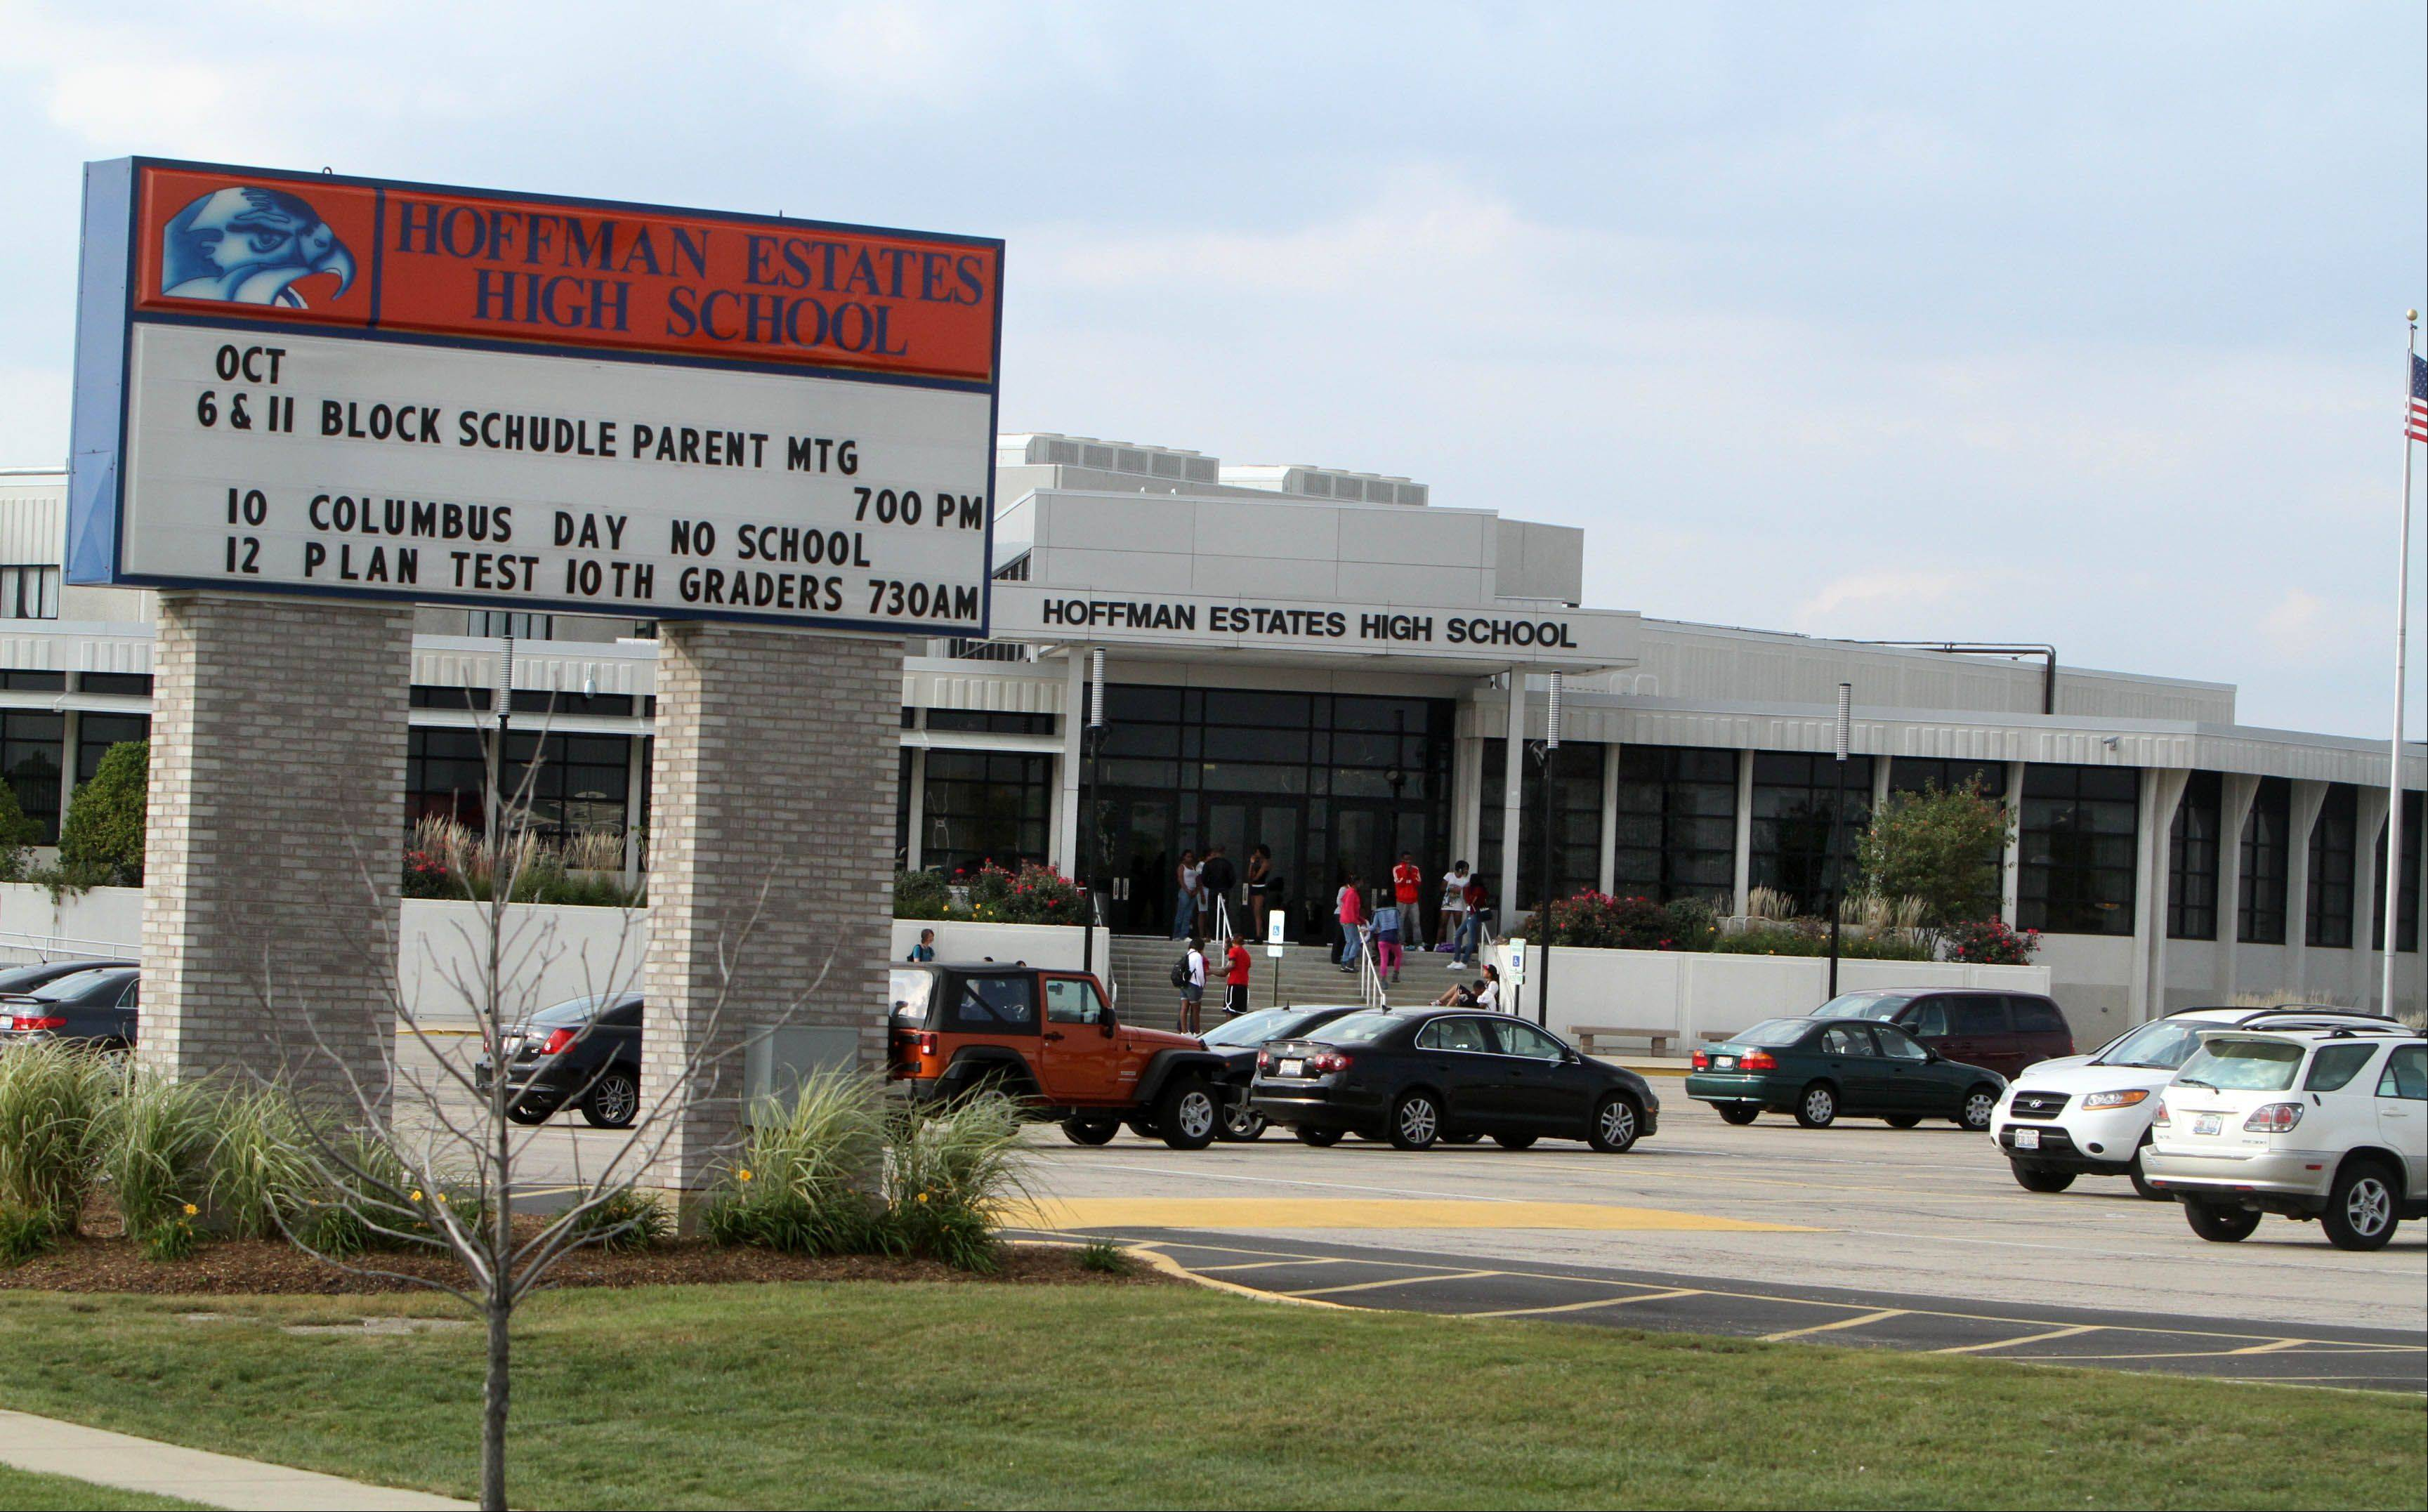 Hazing among high school athletic teams is not uncommon, but recent cases at Maine West and Hoffman Estates high schools have experts and child advocates calling for more education and anti-hazing policies. At Hoffman Estates High School, the hazing took place off campus without the knowledge of coaches. The school's varsity basketball team had to forfeit three basketball games as punishment.